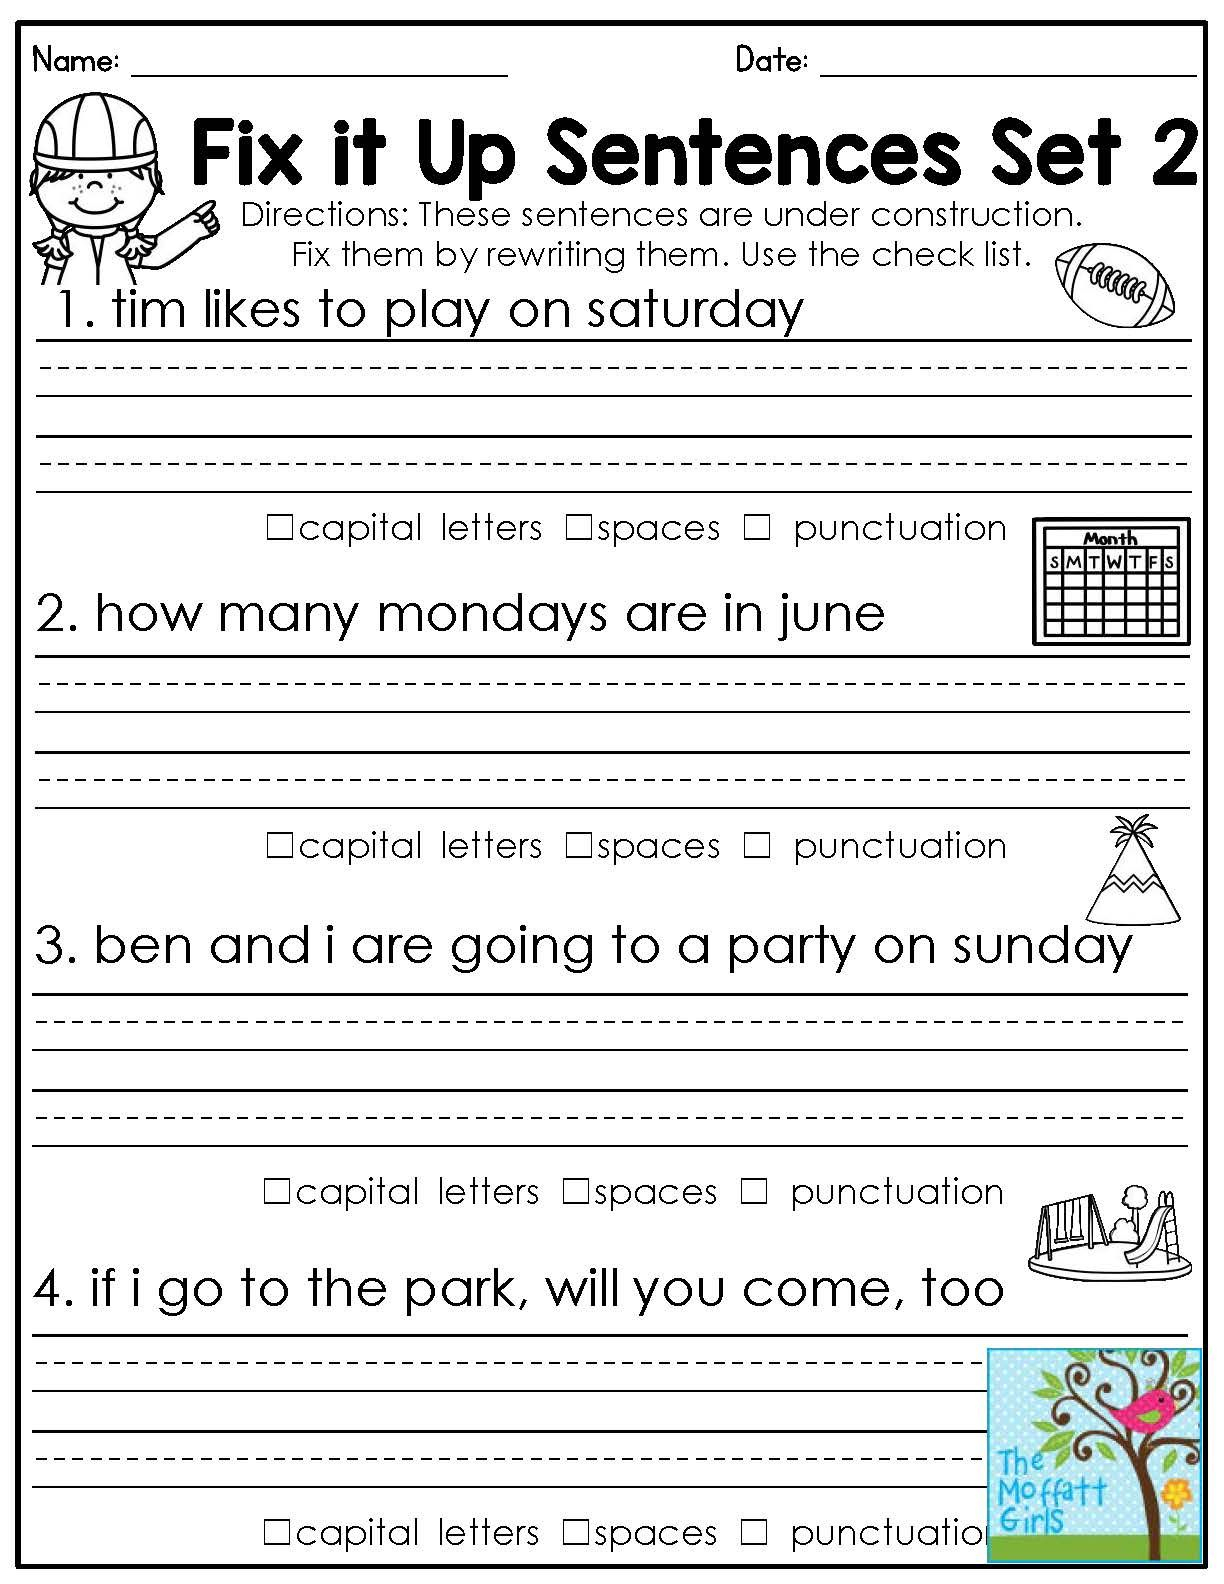 Mastering Grammar And Language Arts! | Grammar | Pinterest | 2Nd - Free Printable Language Arts Worksheets For 1St Grade